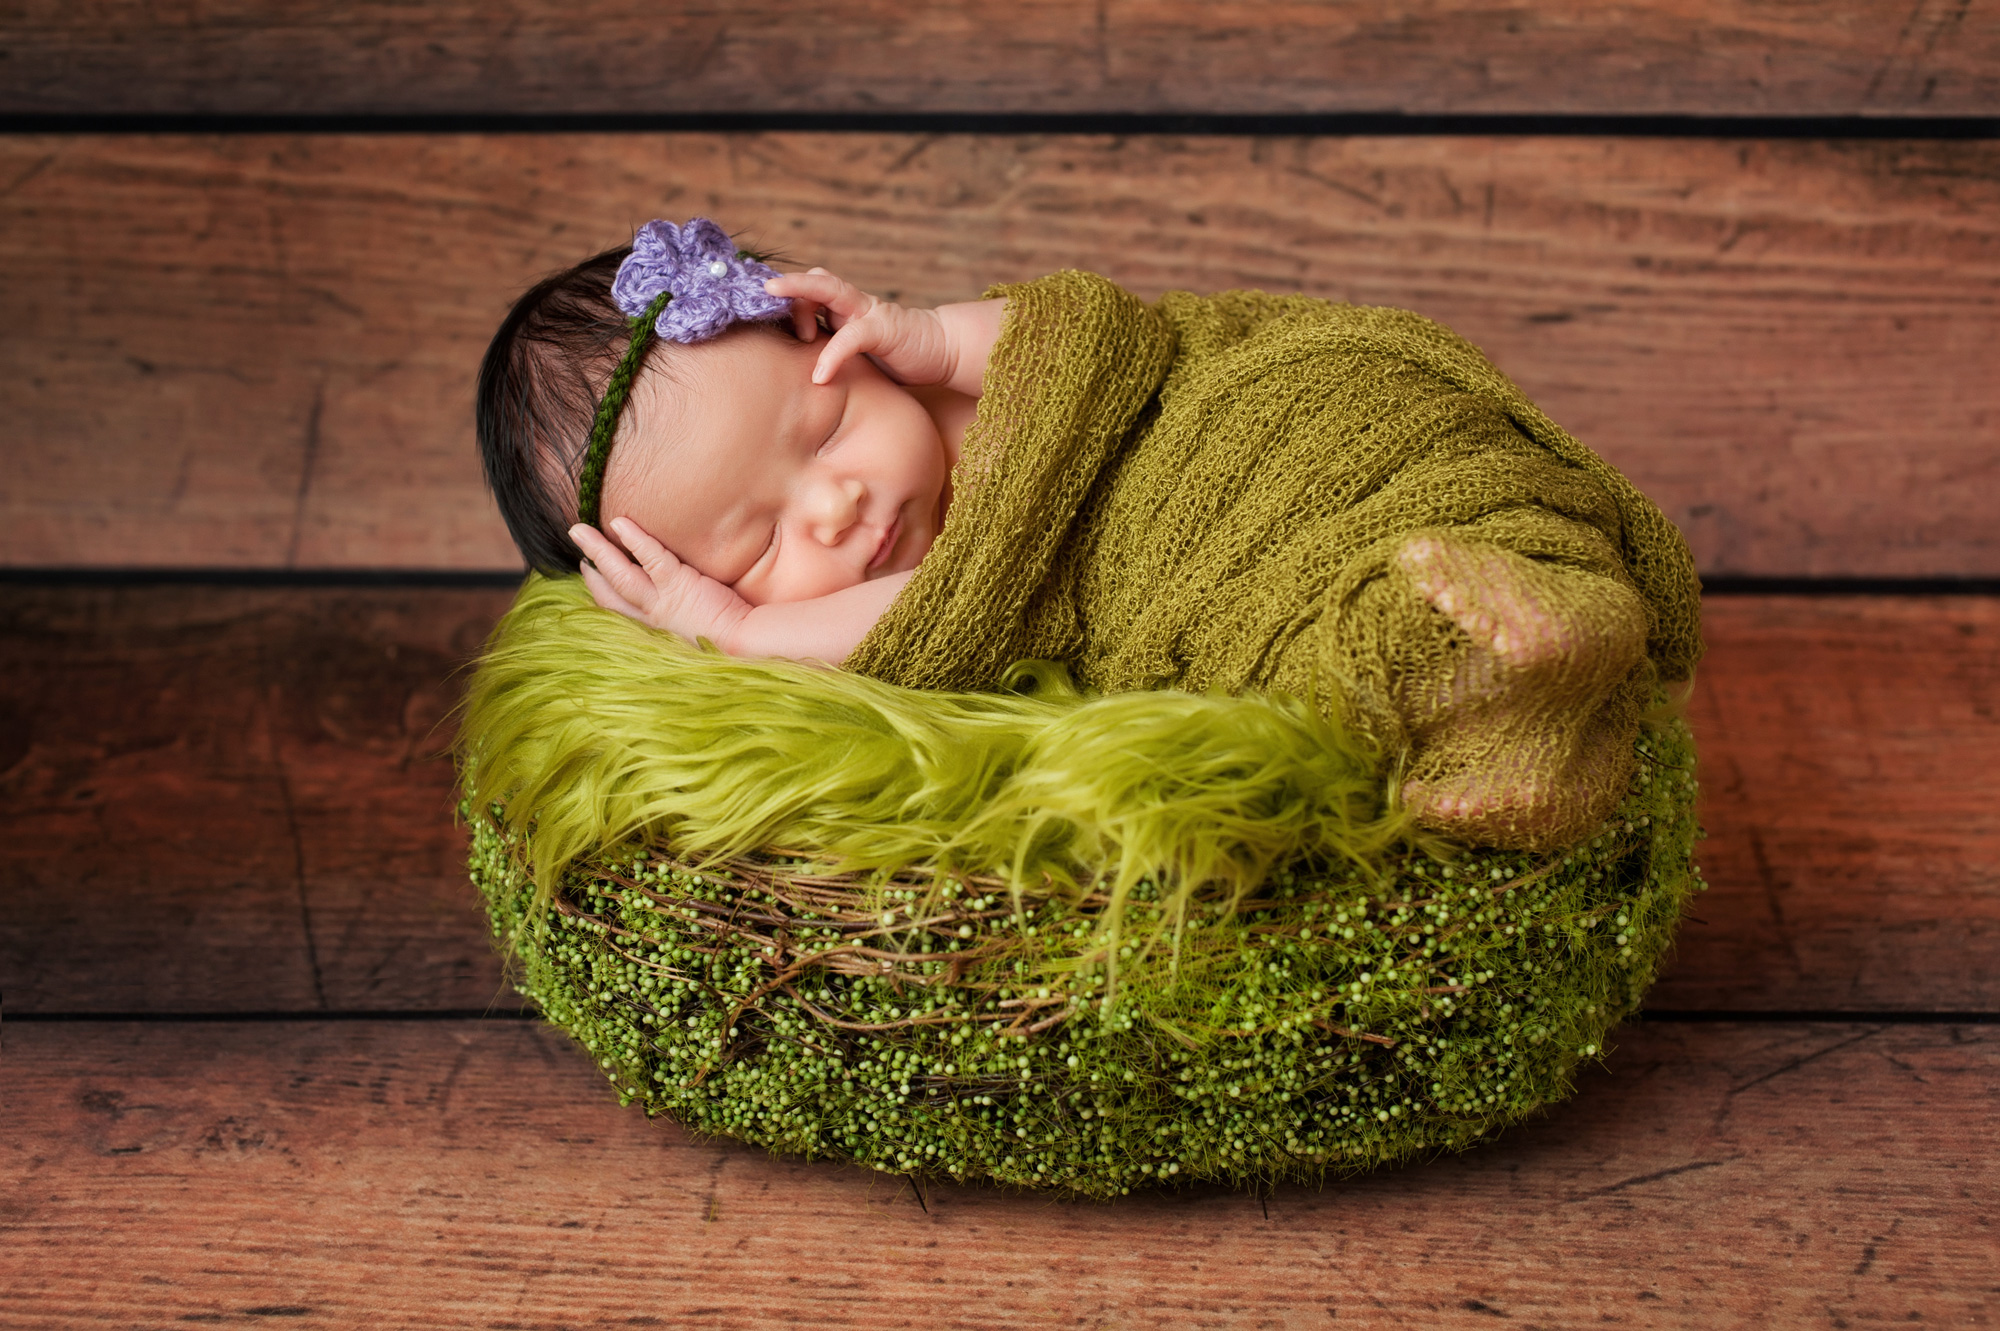 Baby Portrait Photography - Baby in a Basket